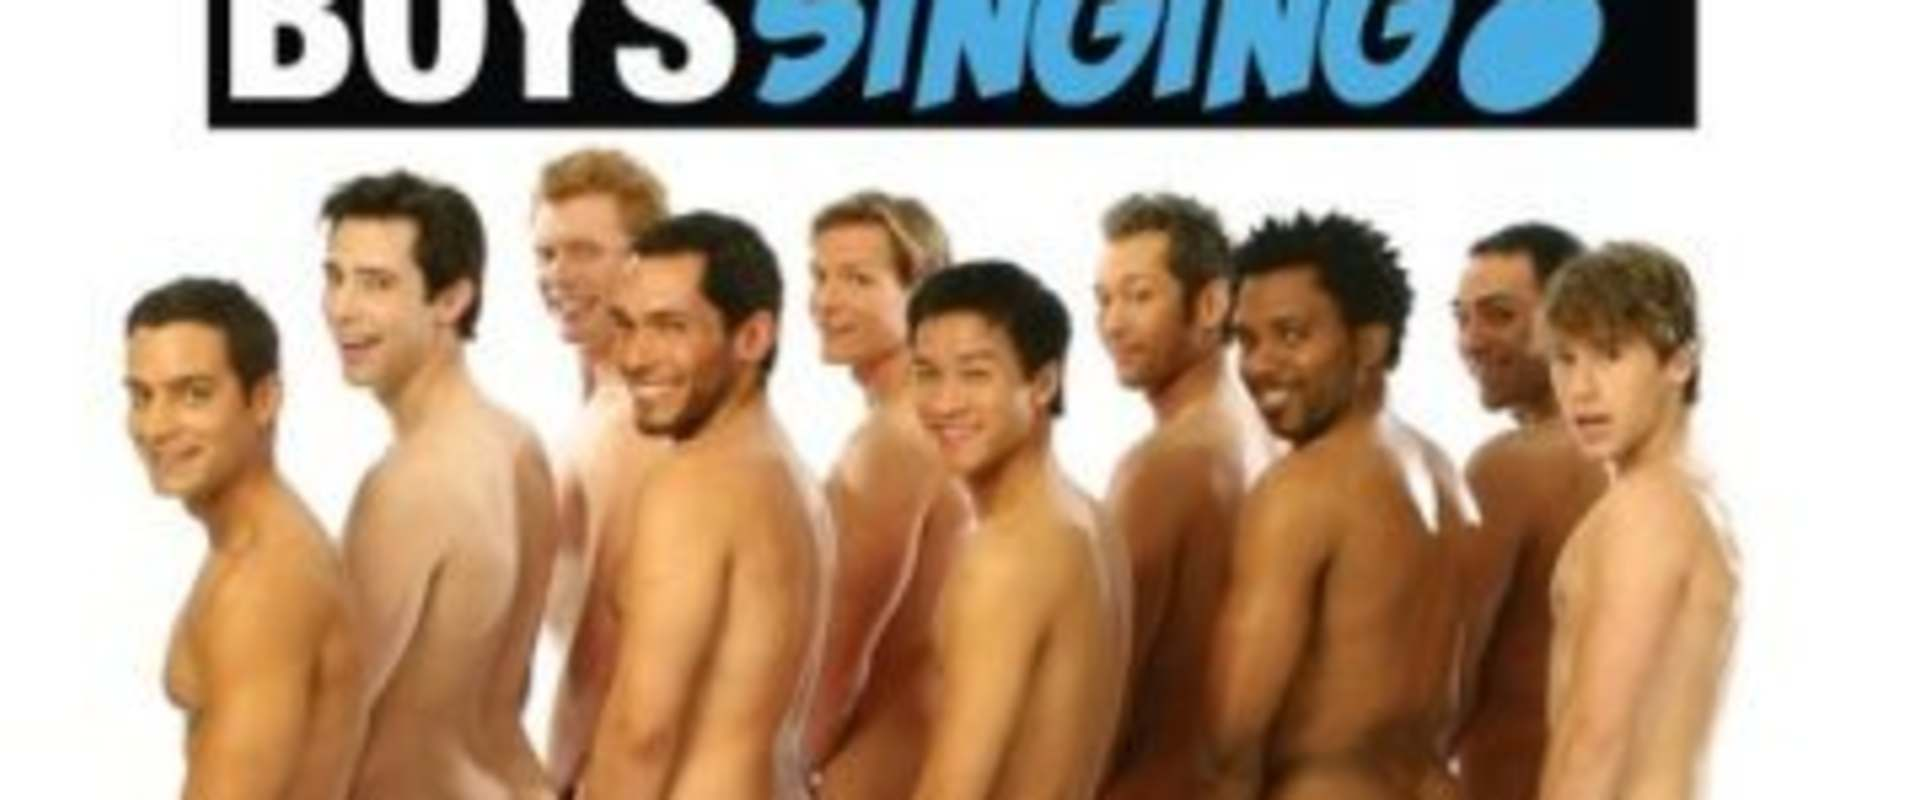 Naked Boys Singing! background 1